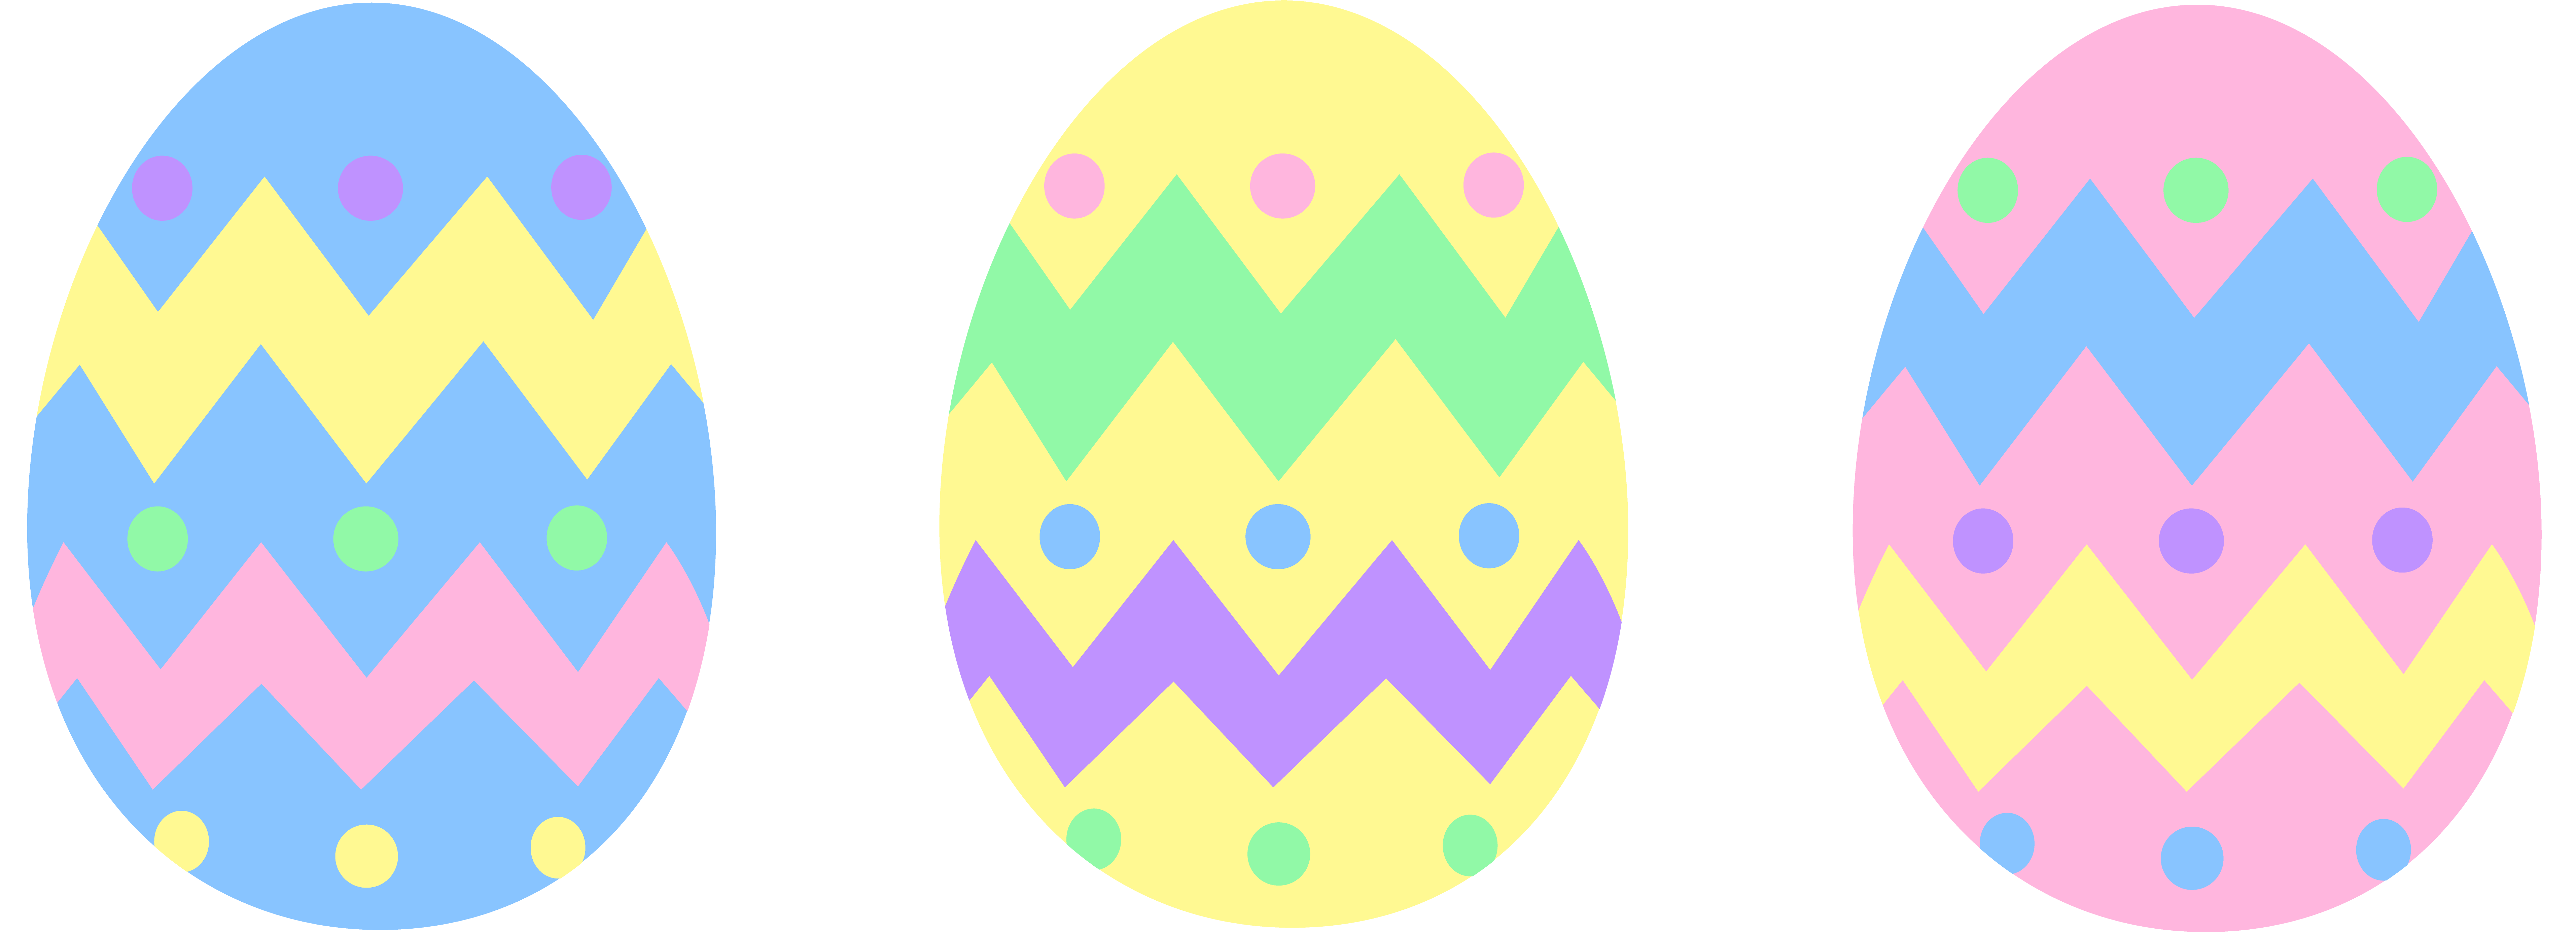 Clipart Easter Eggs - Clipart Bay